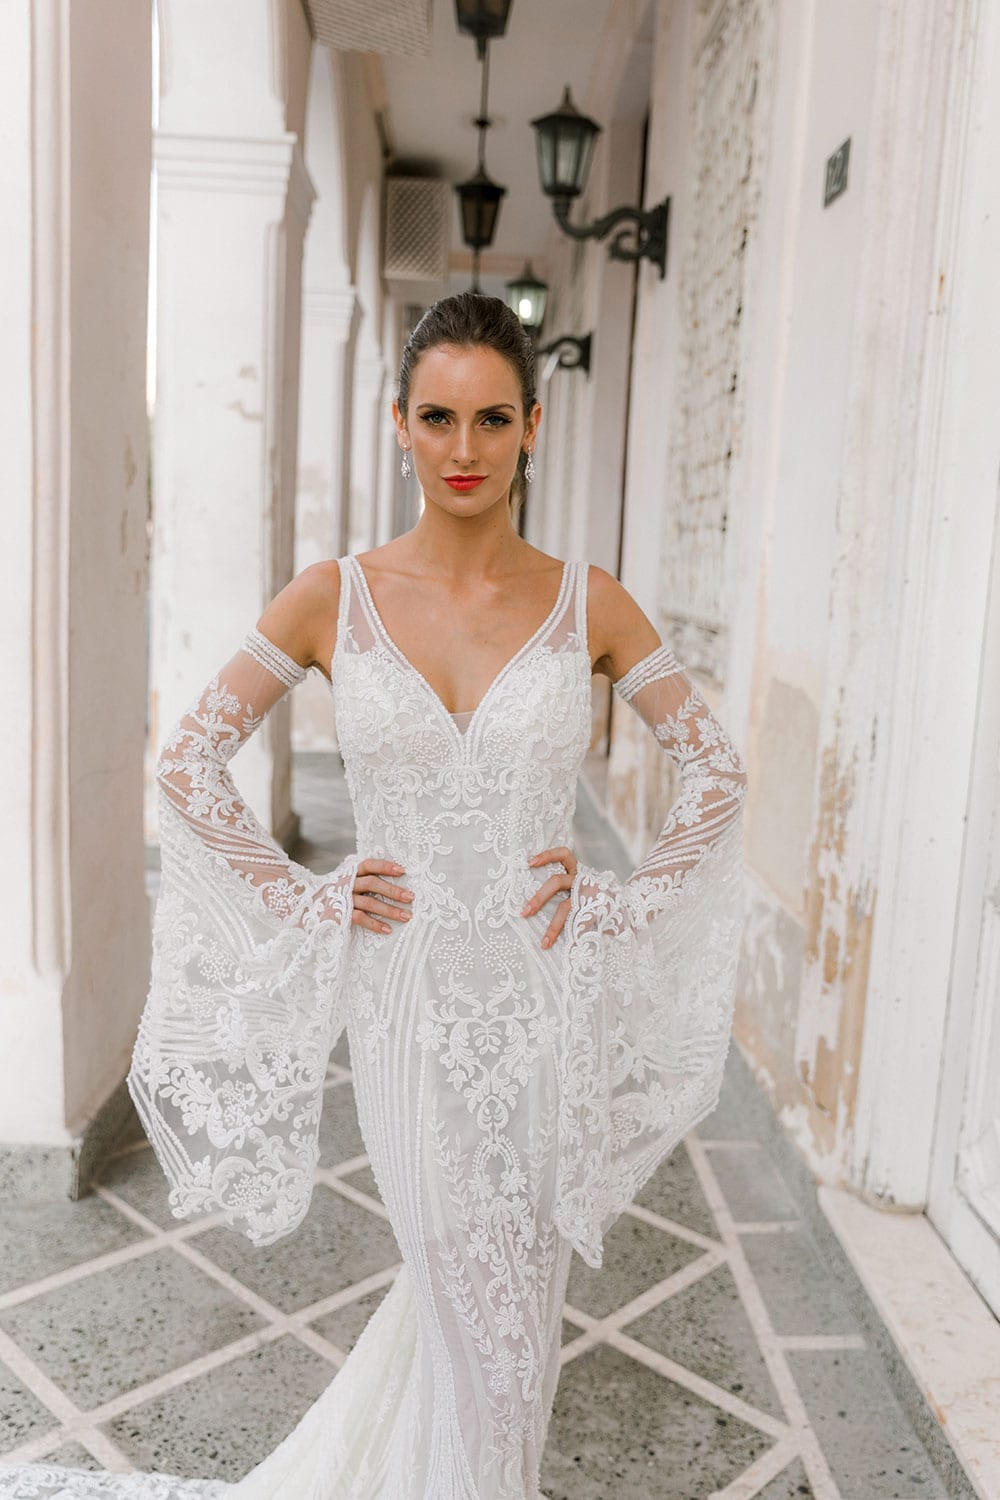 Model wearing Vinka Design Indi Wedding Dress, a Lace Fitted Wedding Gown in a walkway of old Havana hands on hips